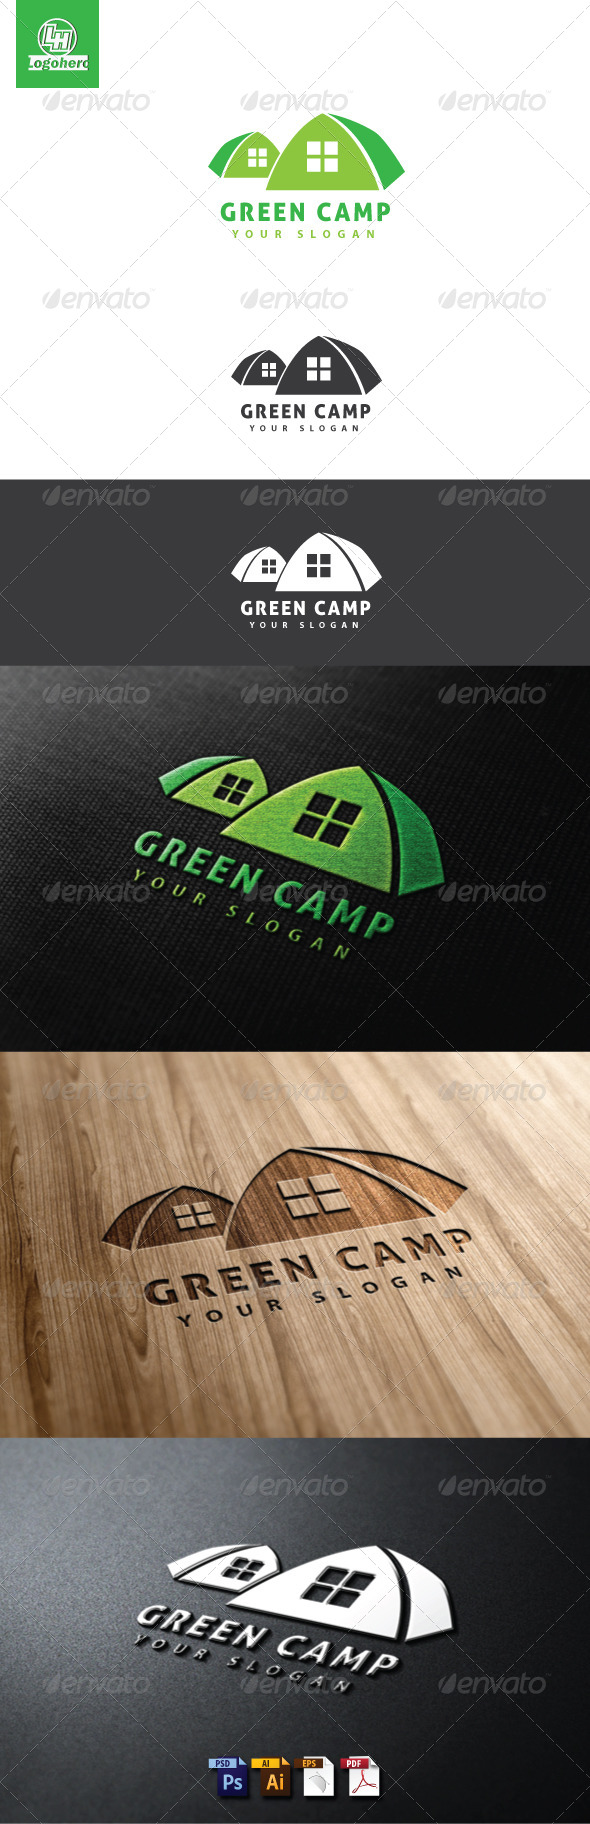 Green Camp Logo Template - Buildings Logo Templates